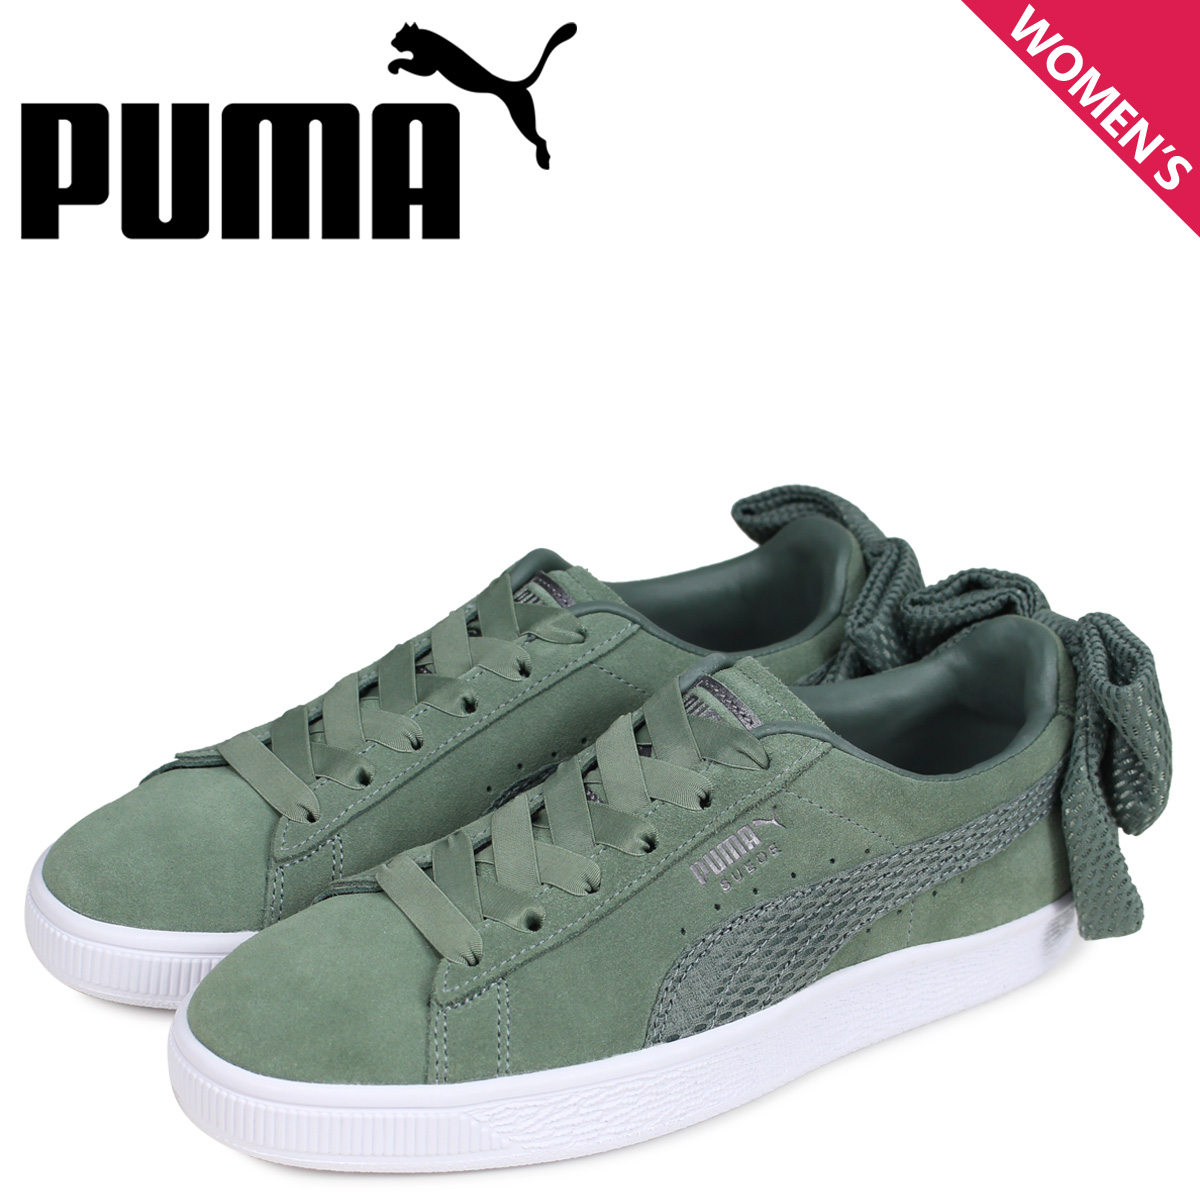 PUMA Puma suede bow tie sneakers Lady's WMNS SUEDE BOW UPRISING green 36745502